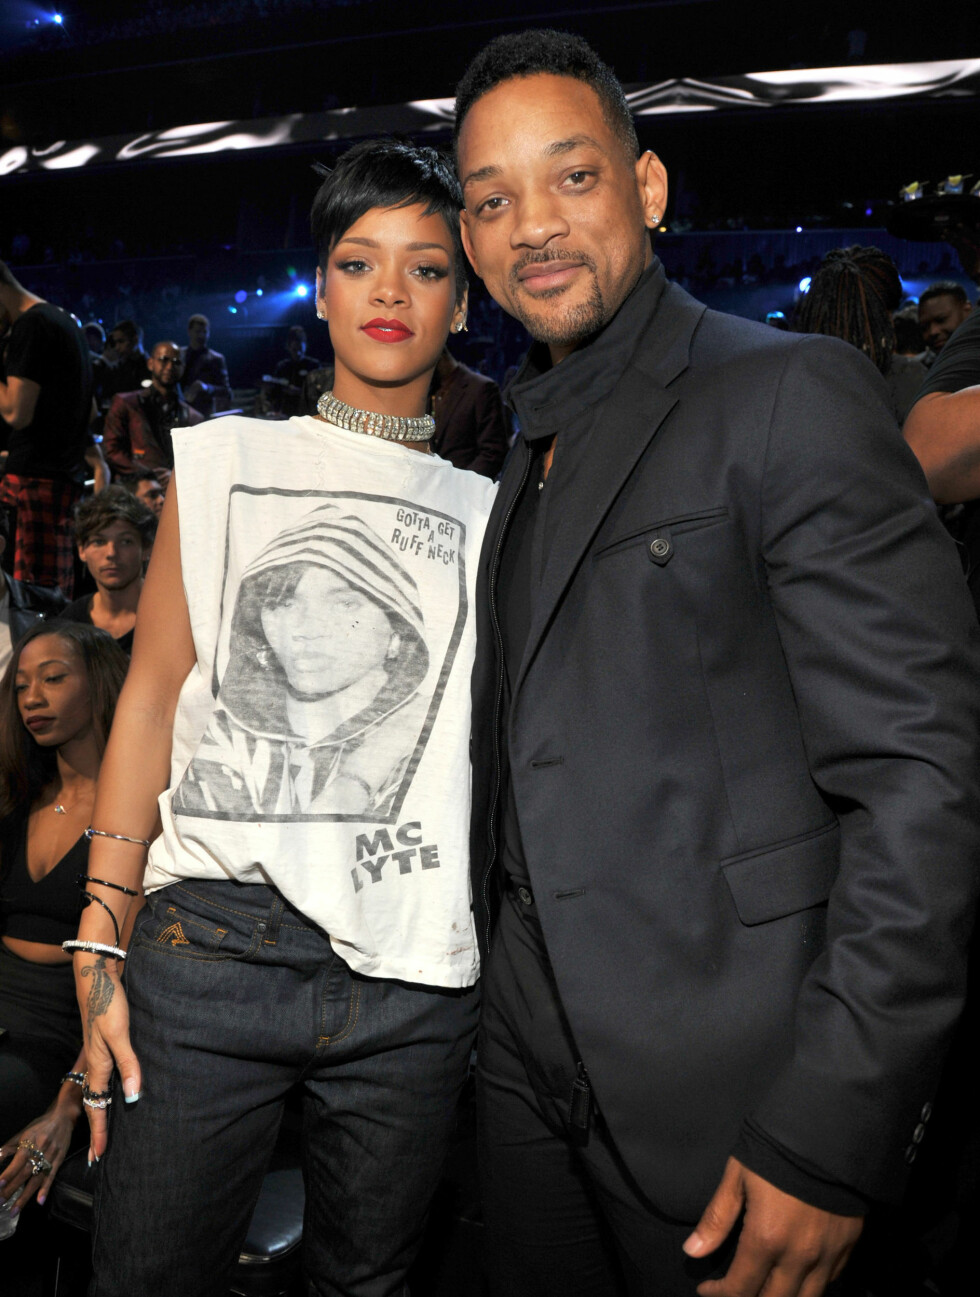 MTV MUSIC VIDEO AWARDS 2013: Pappa og skuespiller Will Smith koste seg med Rihanna. Foto: WireImage/Getty Images/All Over Press